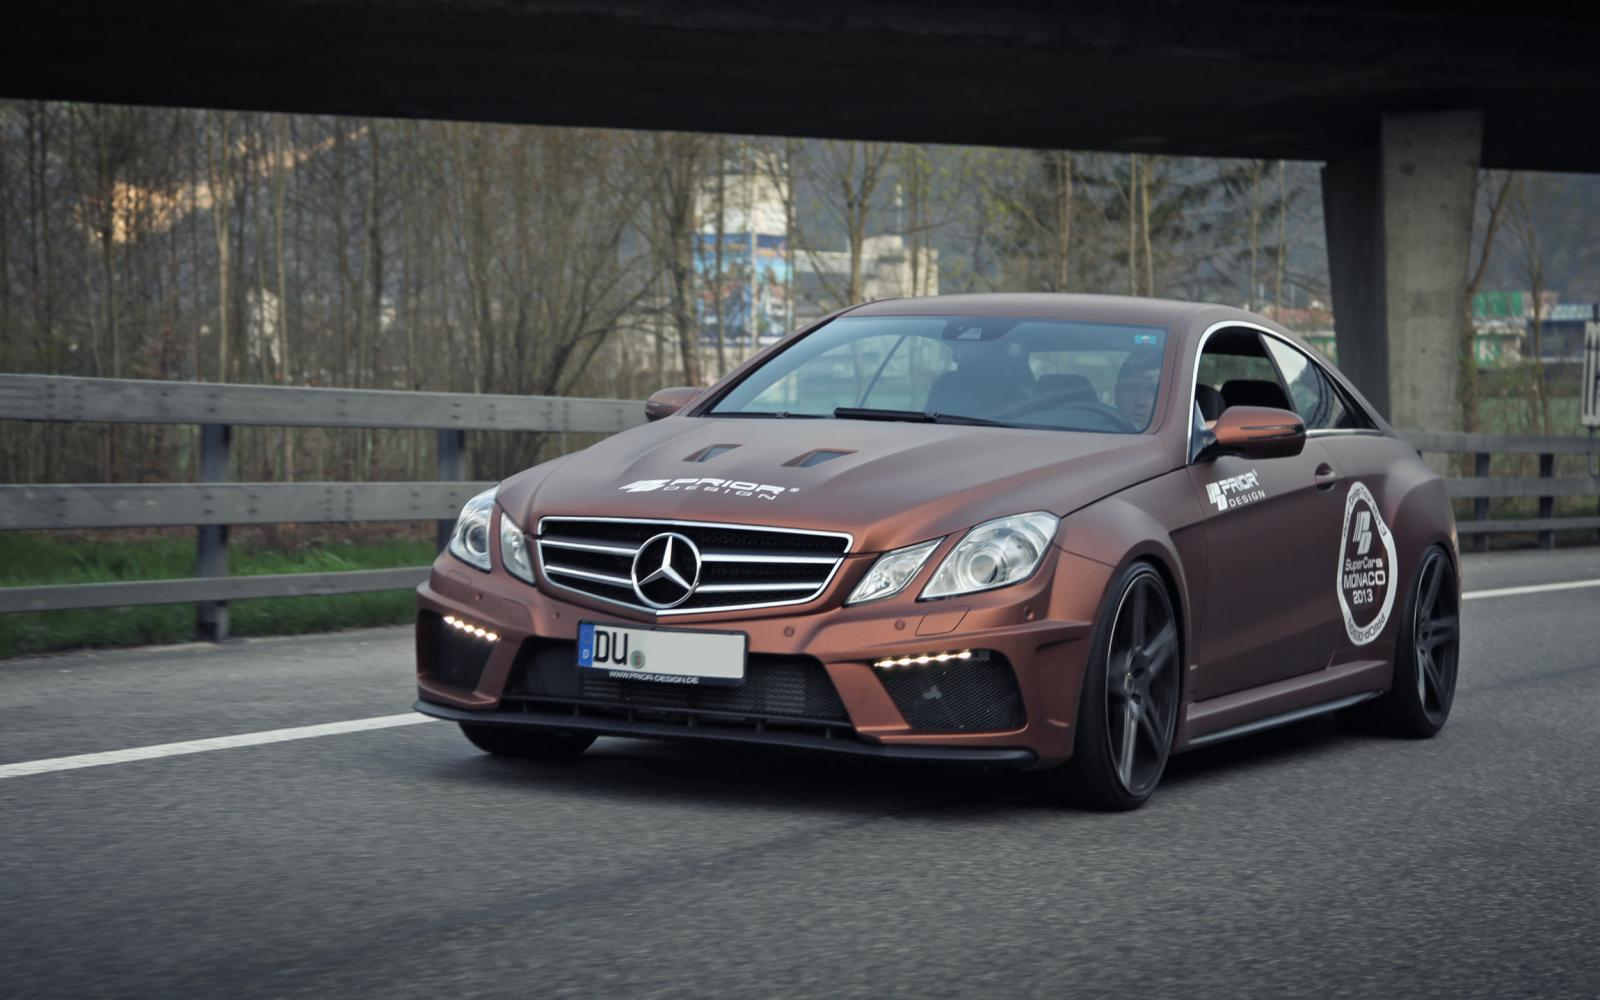 Mercedes Tuning: Prior Design E-Class Coupe widebody kit